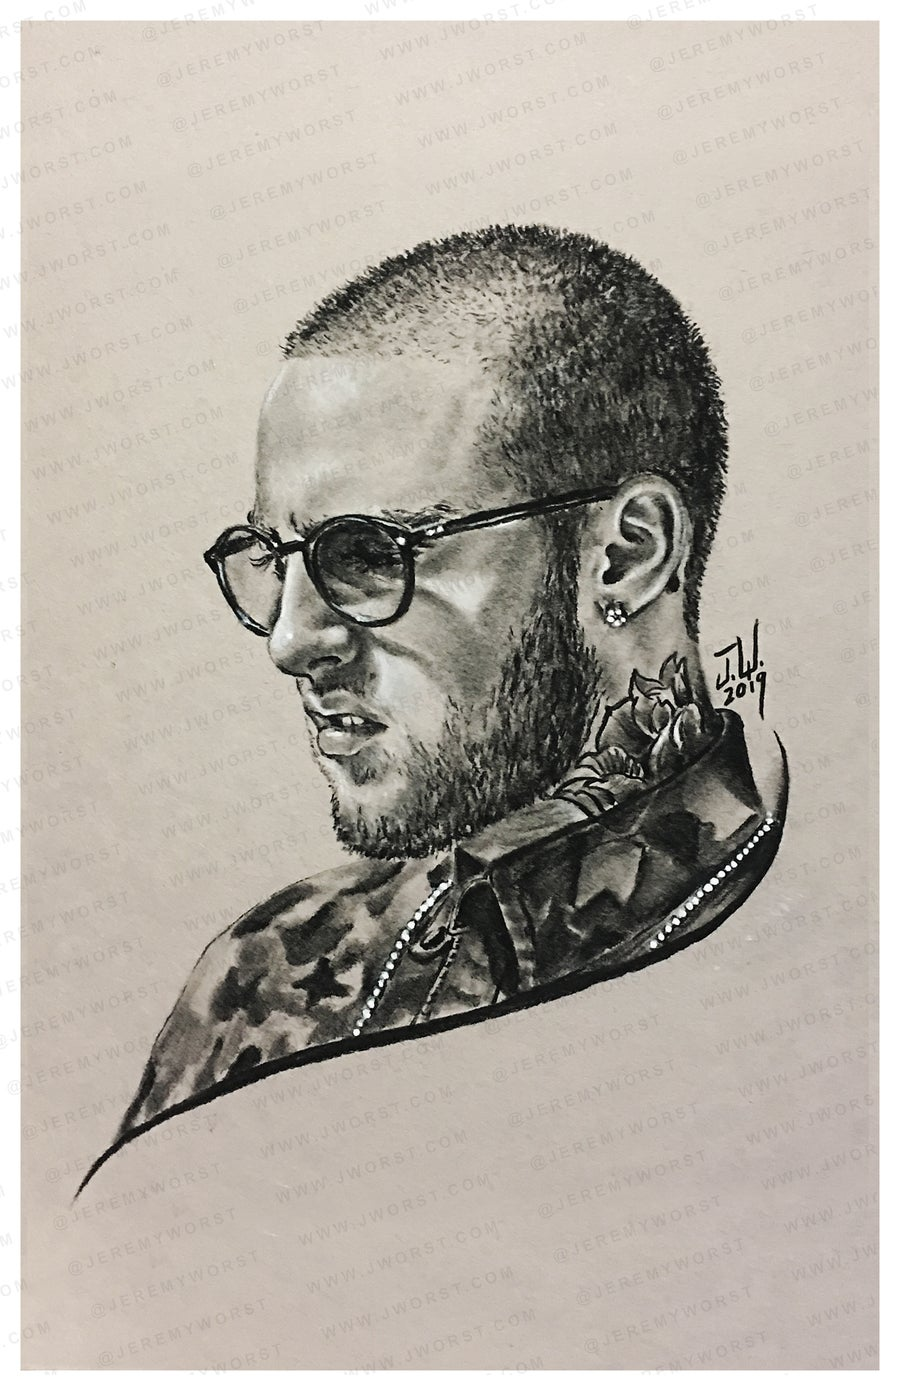 Image of MAC MILLER Sketch by Jeremy Worst Hip hop Rip legend artwork sad macmiller sticker pin design print